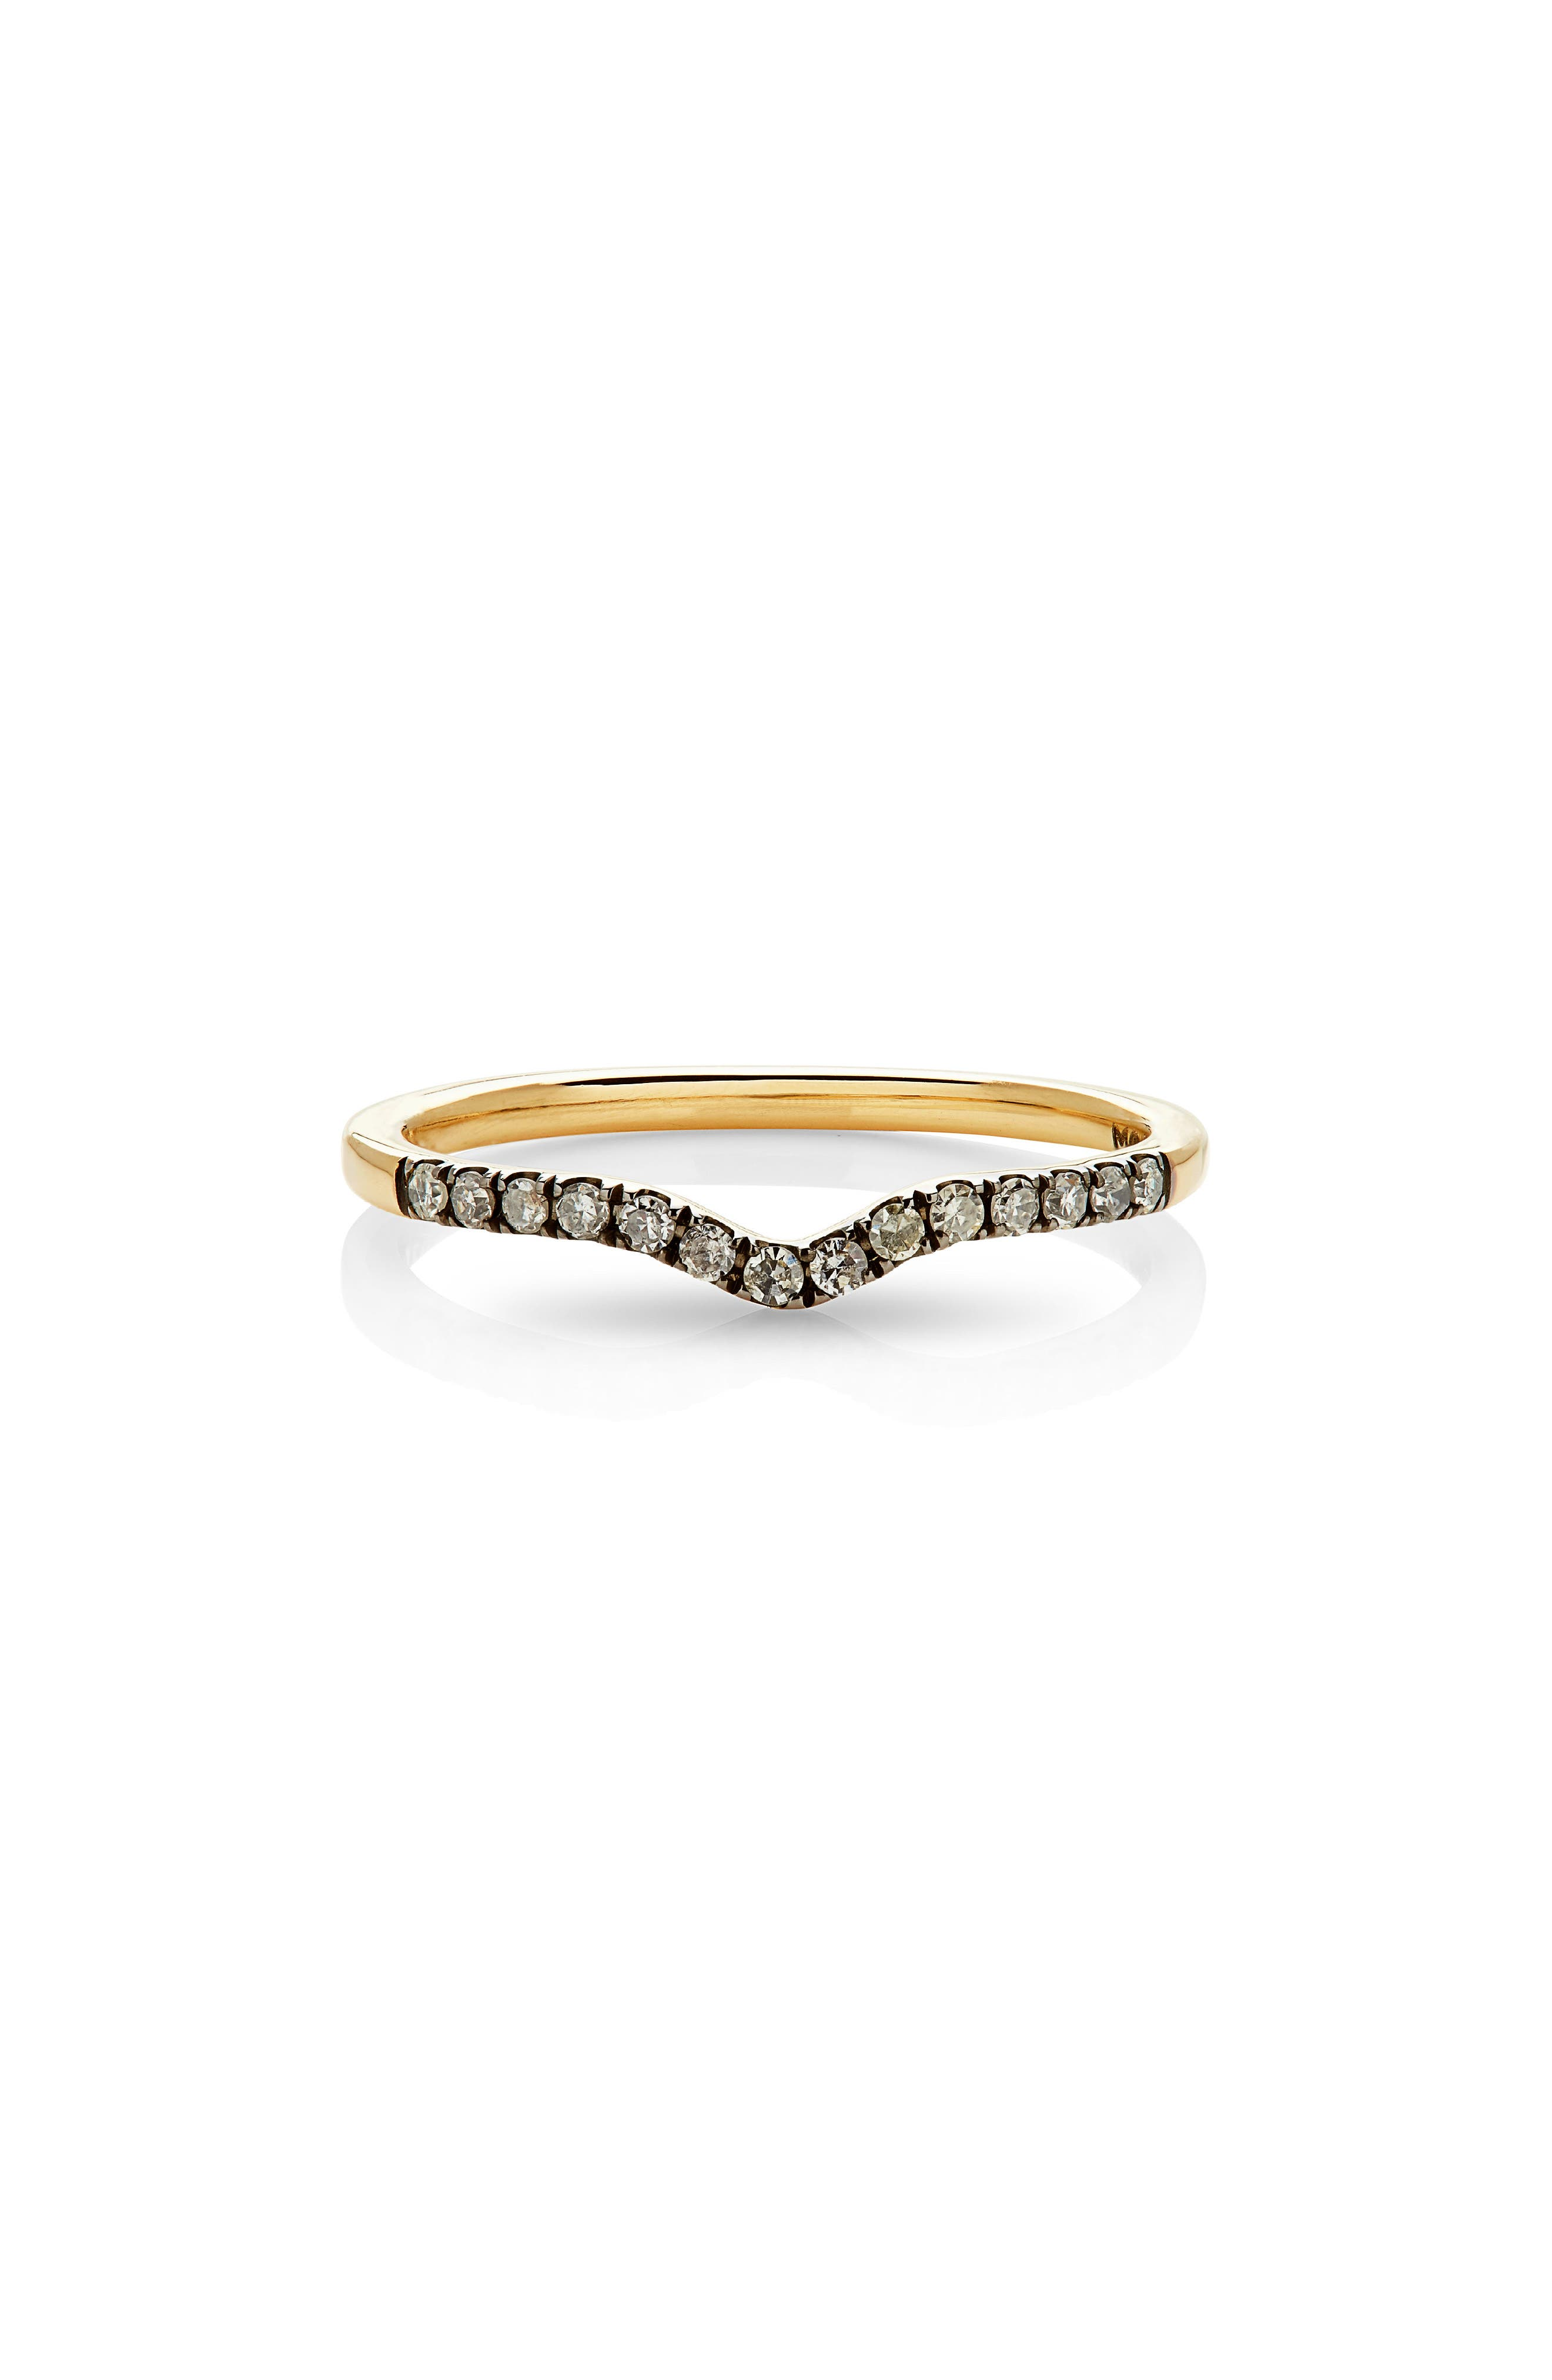 Unity Diamond Band Ring,                         Main,                         color, YELLOW GOLD